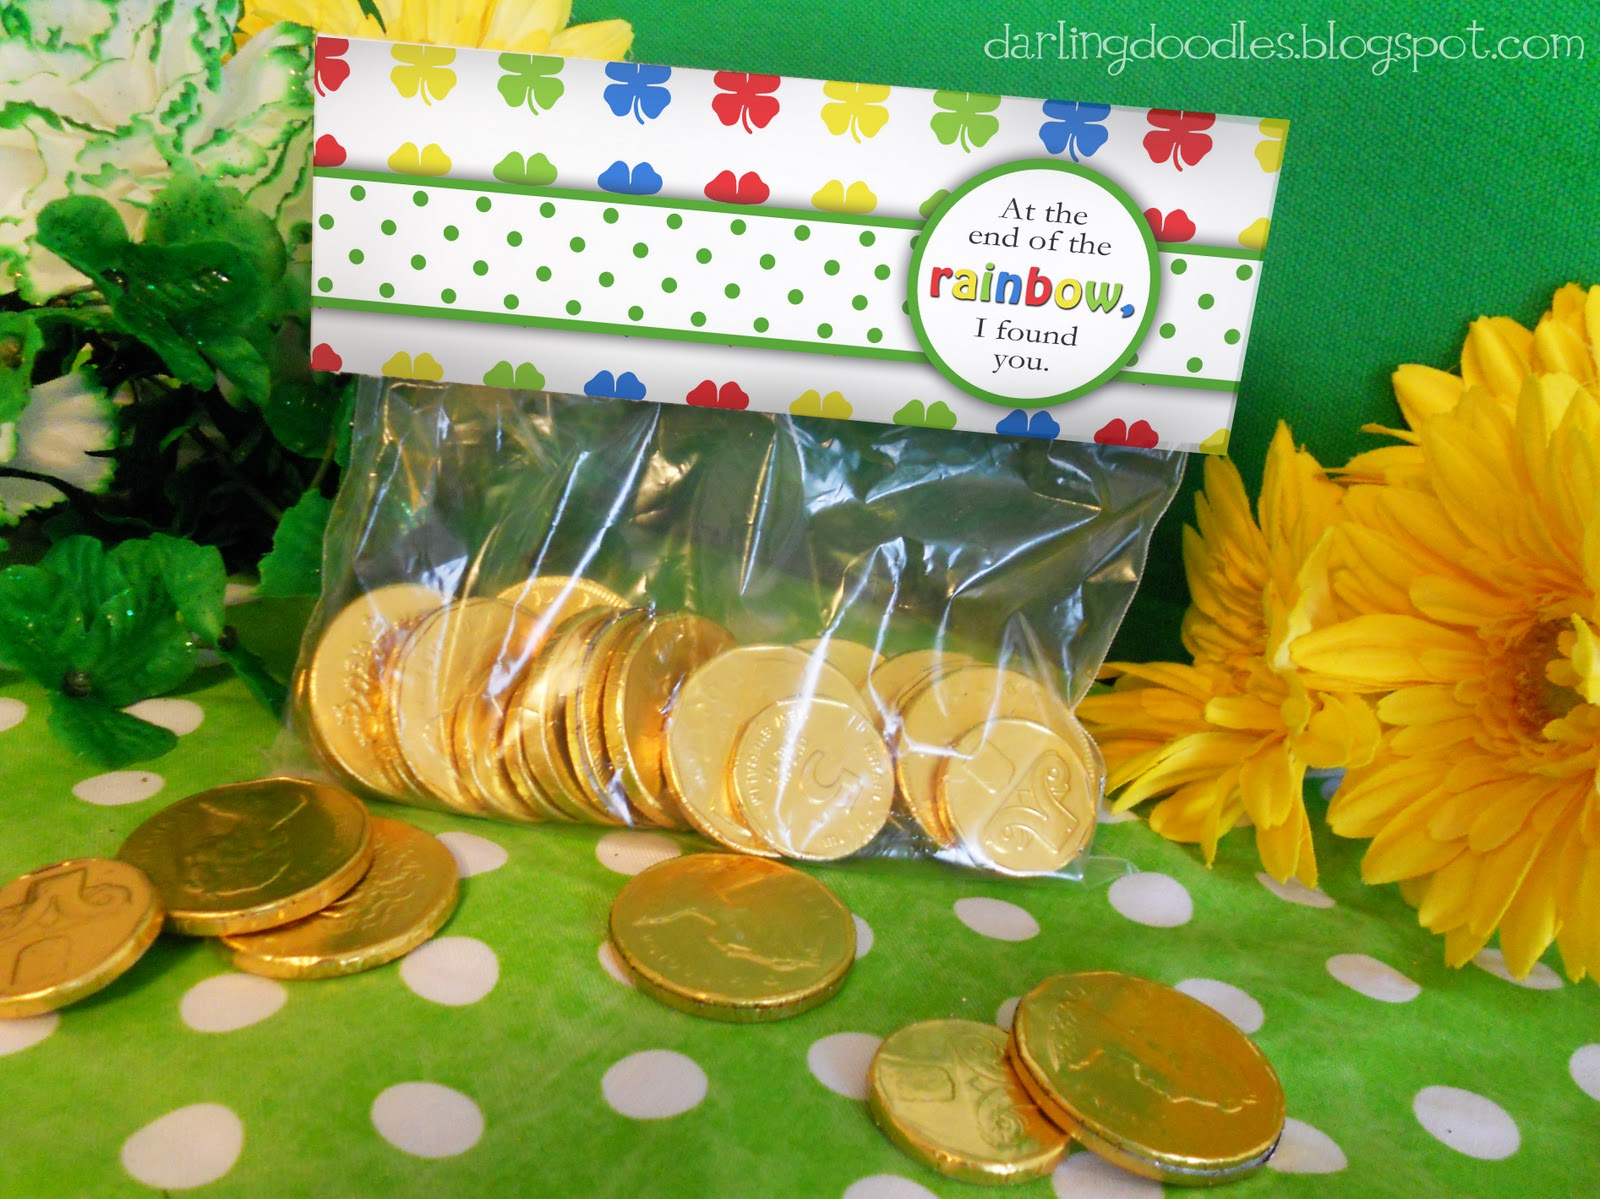 St patricks archives darling doodles st patricks day treat bag toppers negle Gallery